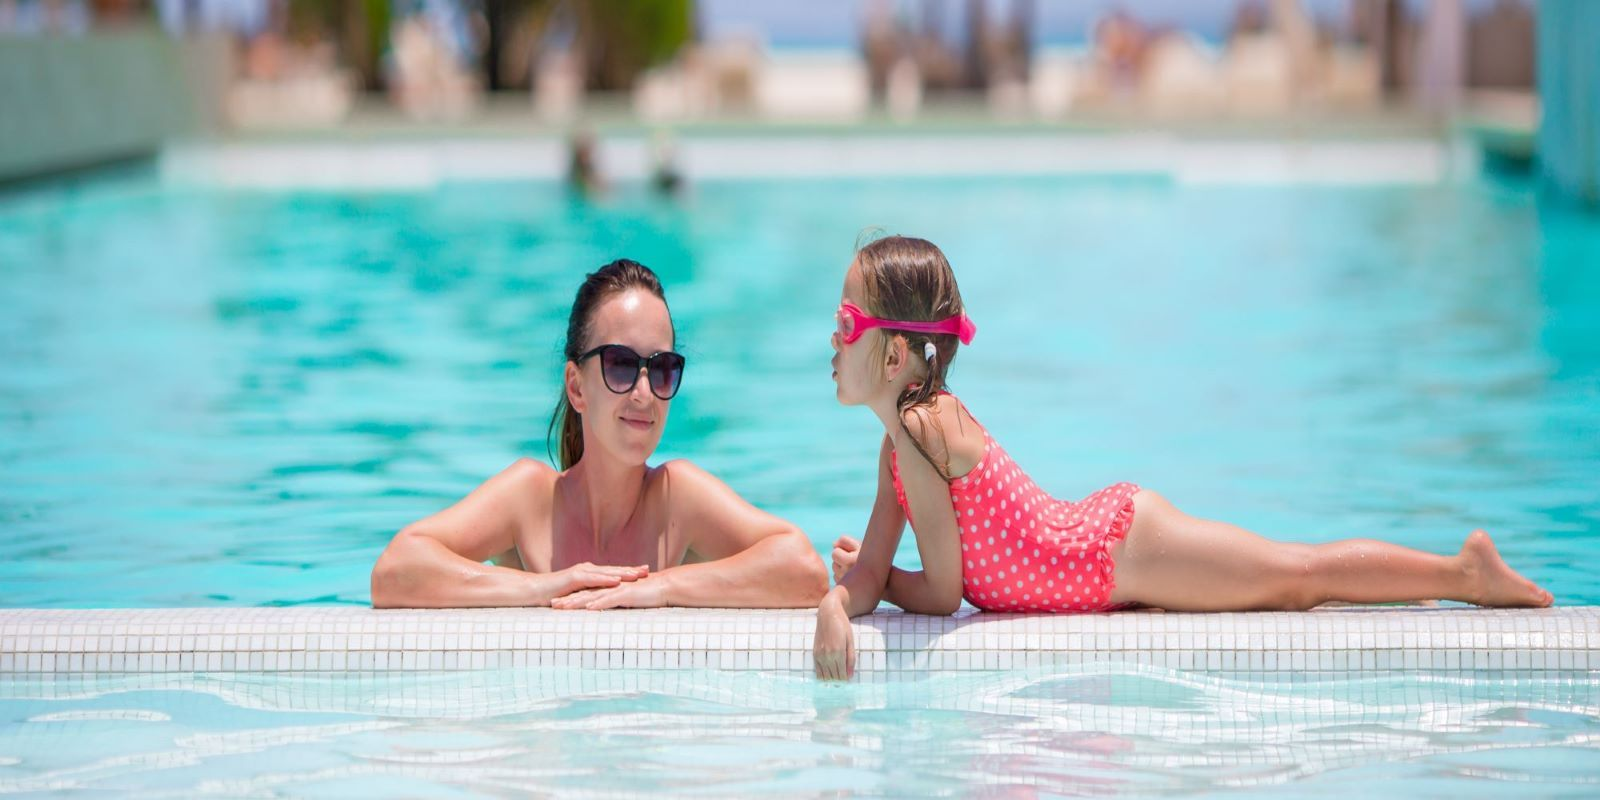 Chlorine skin Allergy and Ways to Avoid It